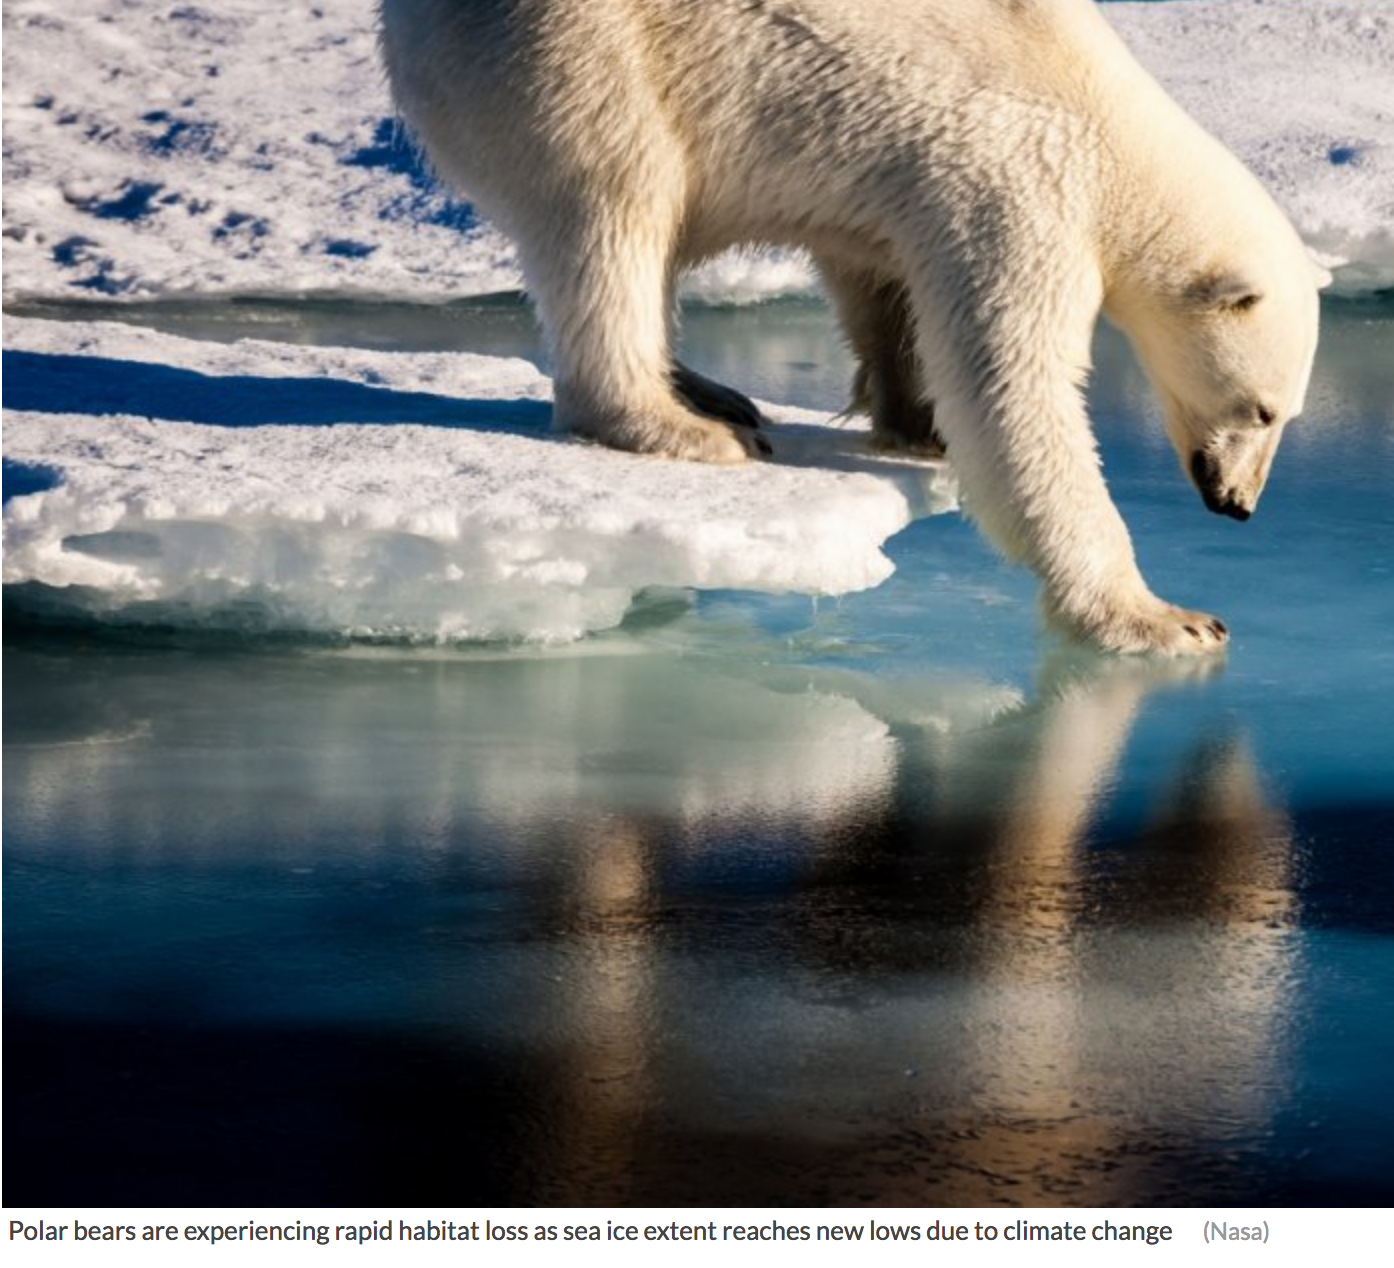 Polar bears are experiencing rapid habitat loss as sea ice extent reaches new lows due to climate change